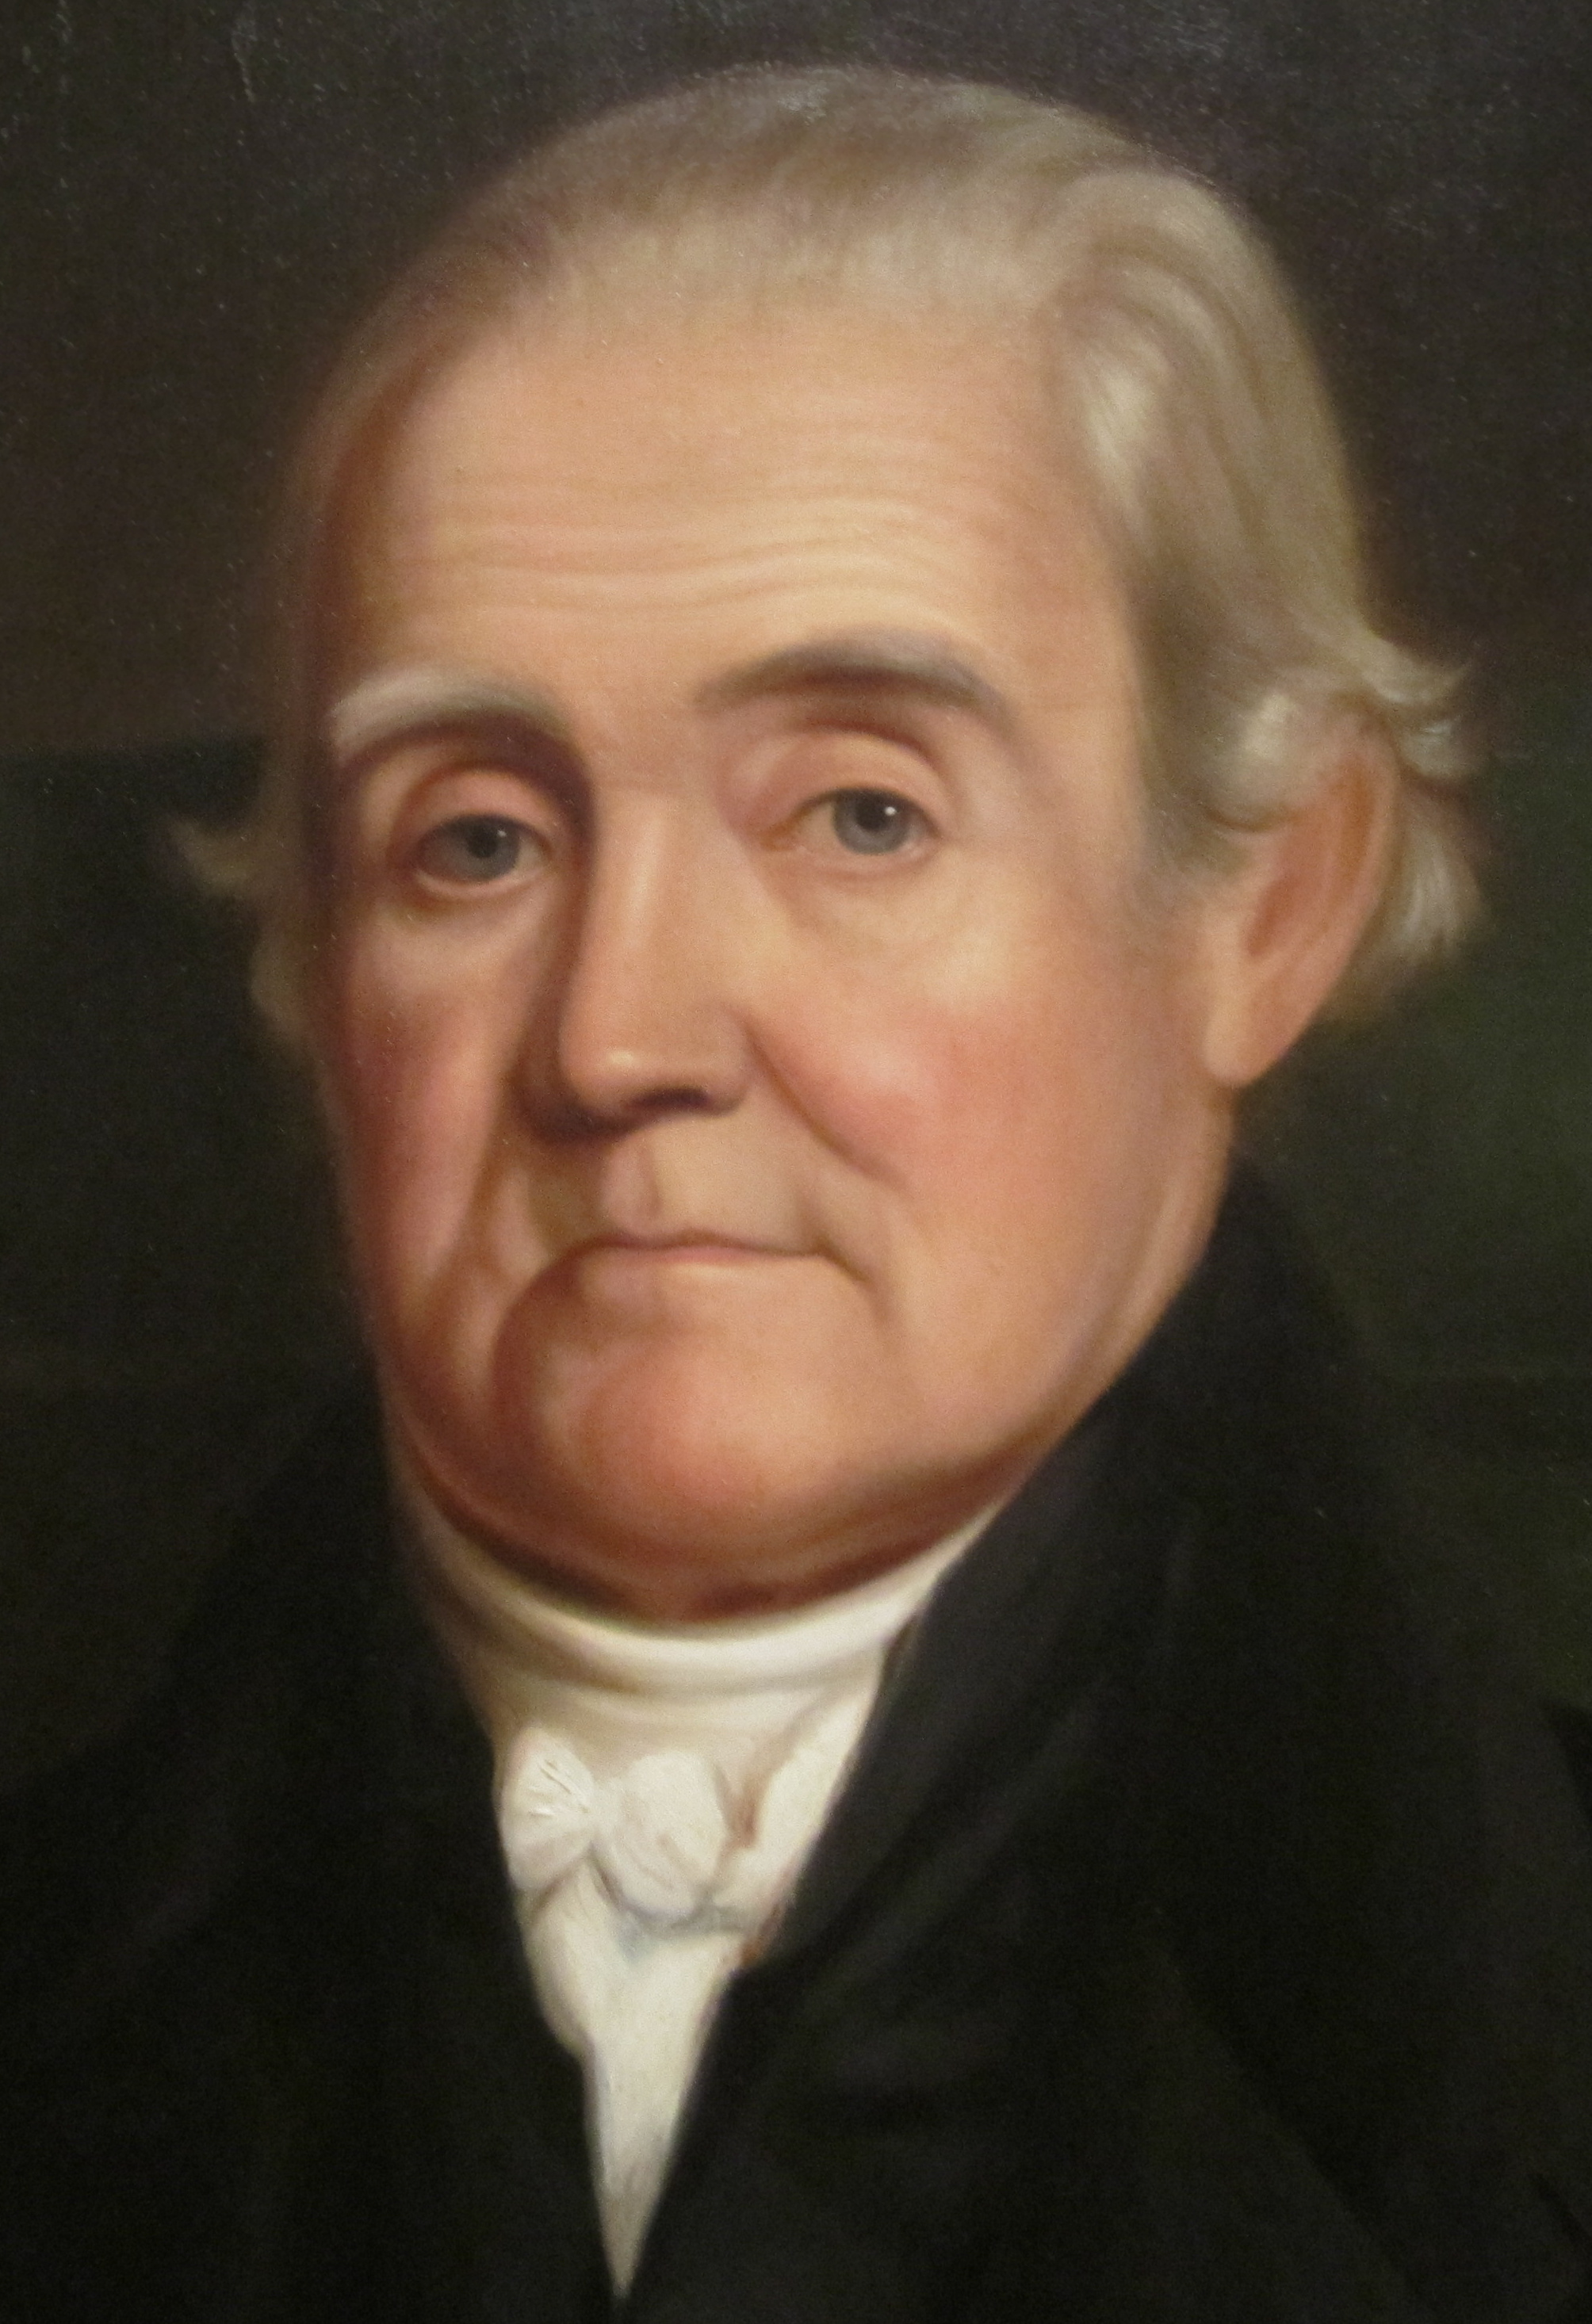 http://upload.wikimedia.org/wikipedia/commons/a/a5/Noah_Webster_pre-1843_IMG_4412_Cropped.JPG